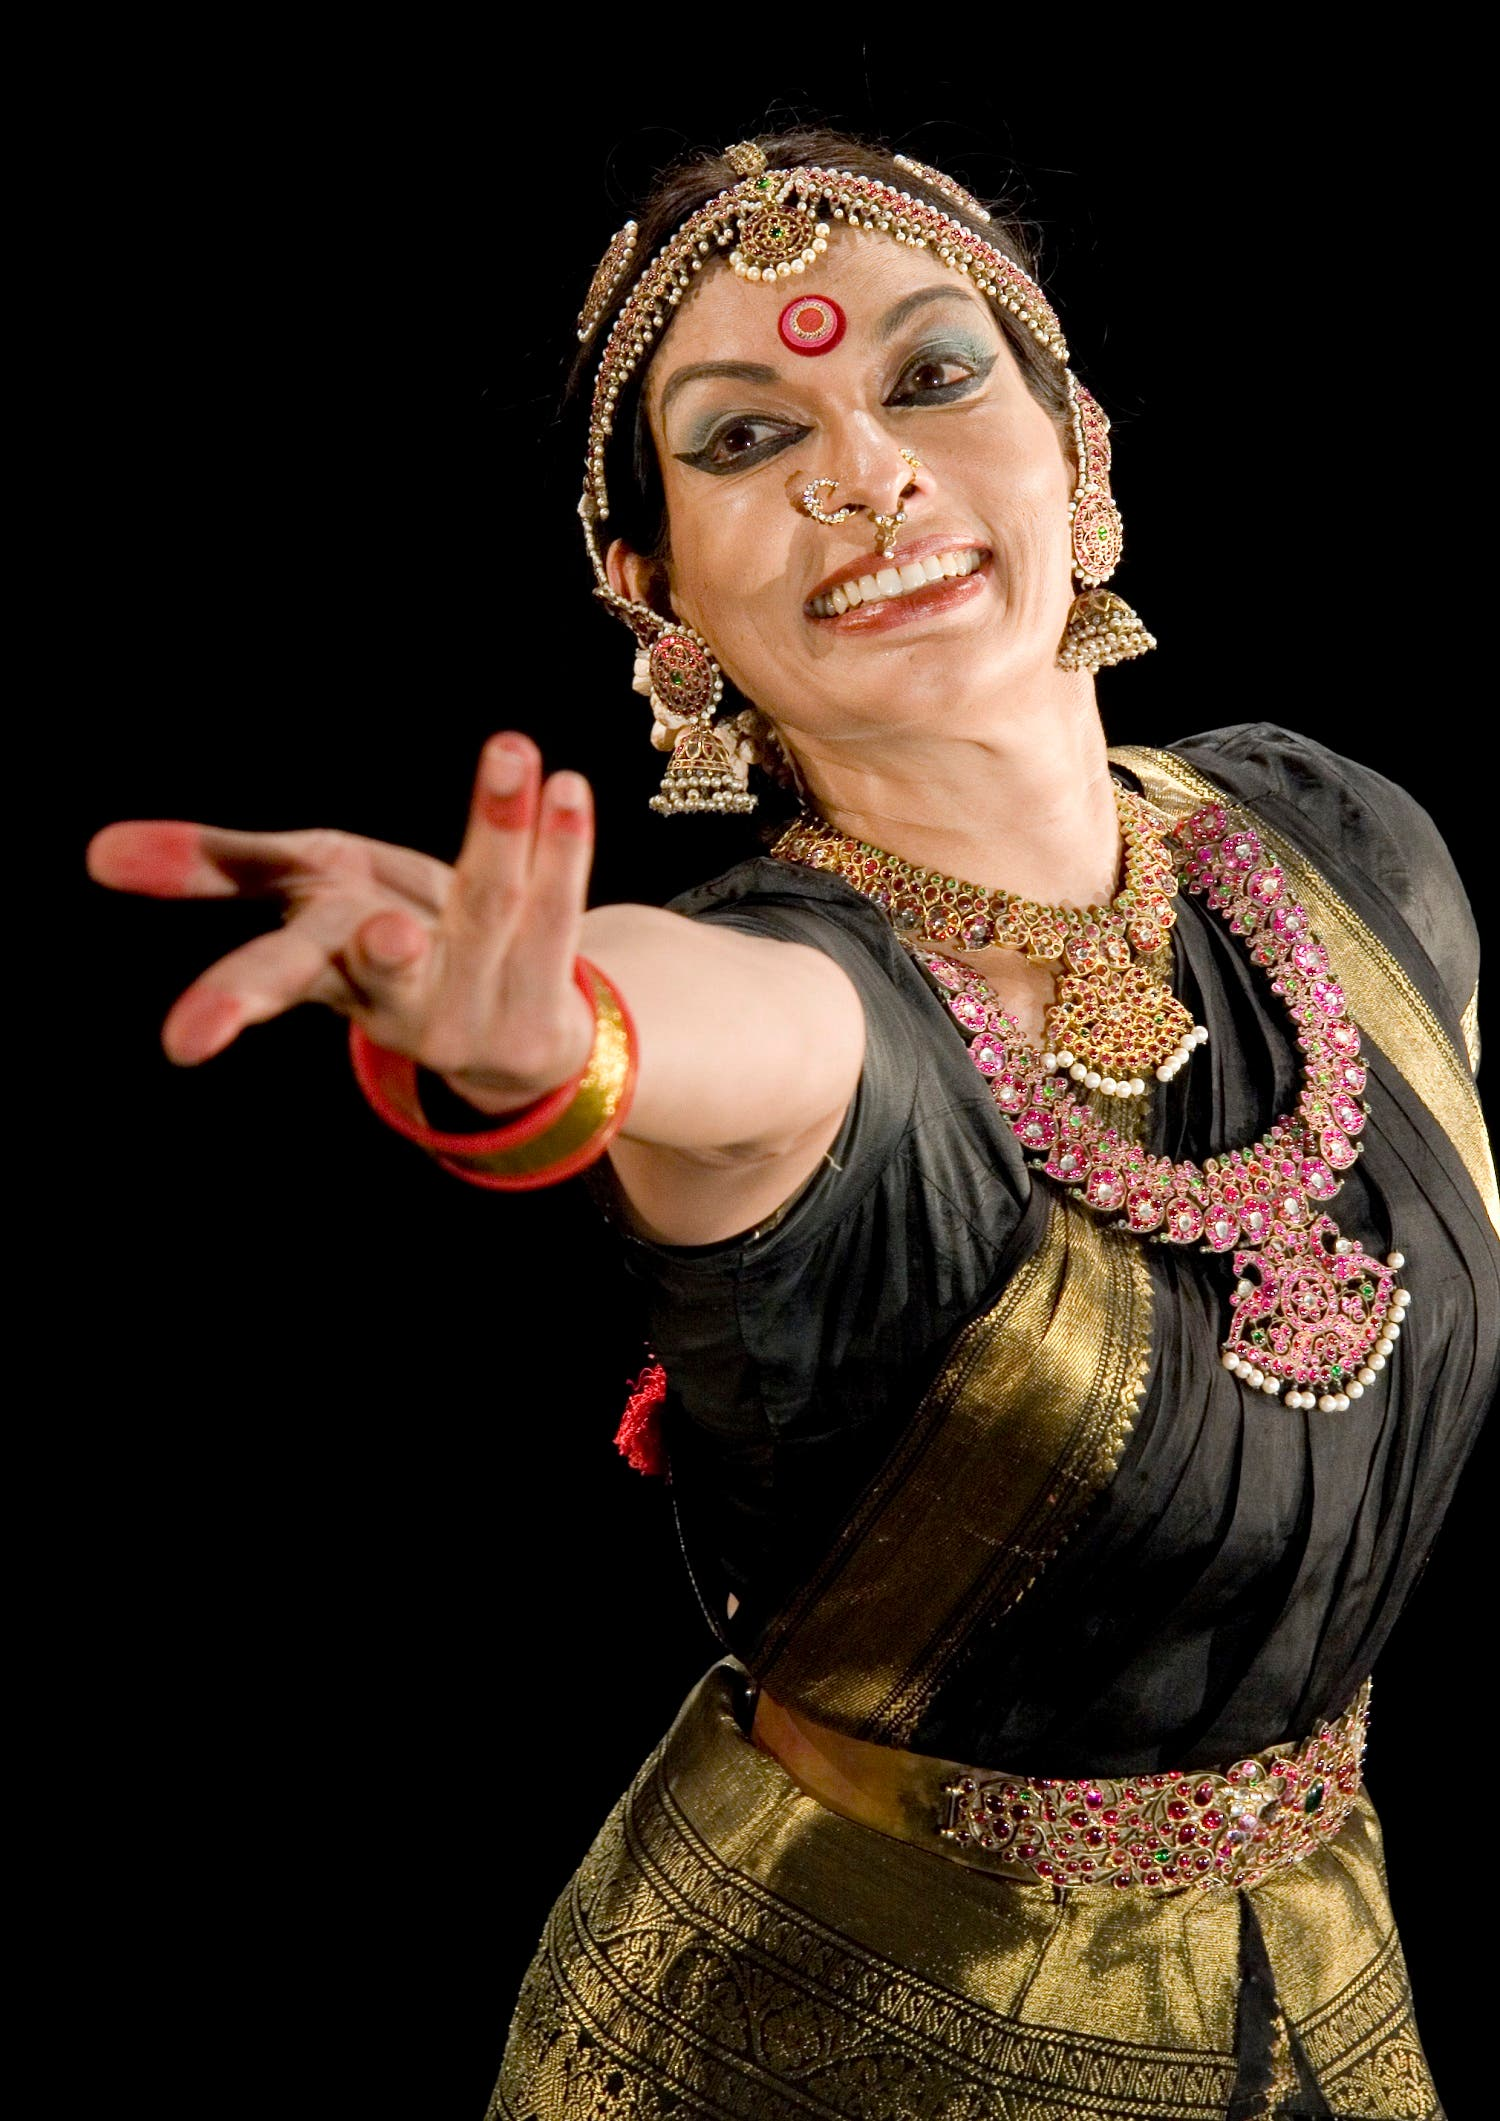 Top-drawer classical dancer Mallika Sarabhai says that marriage is not compatible with free-spirited, independent women. (Supplied)